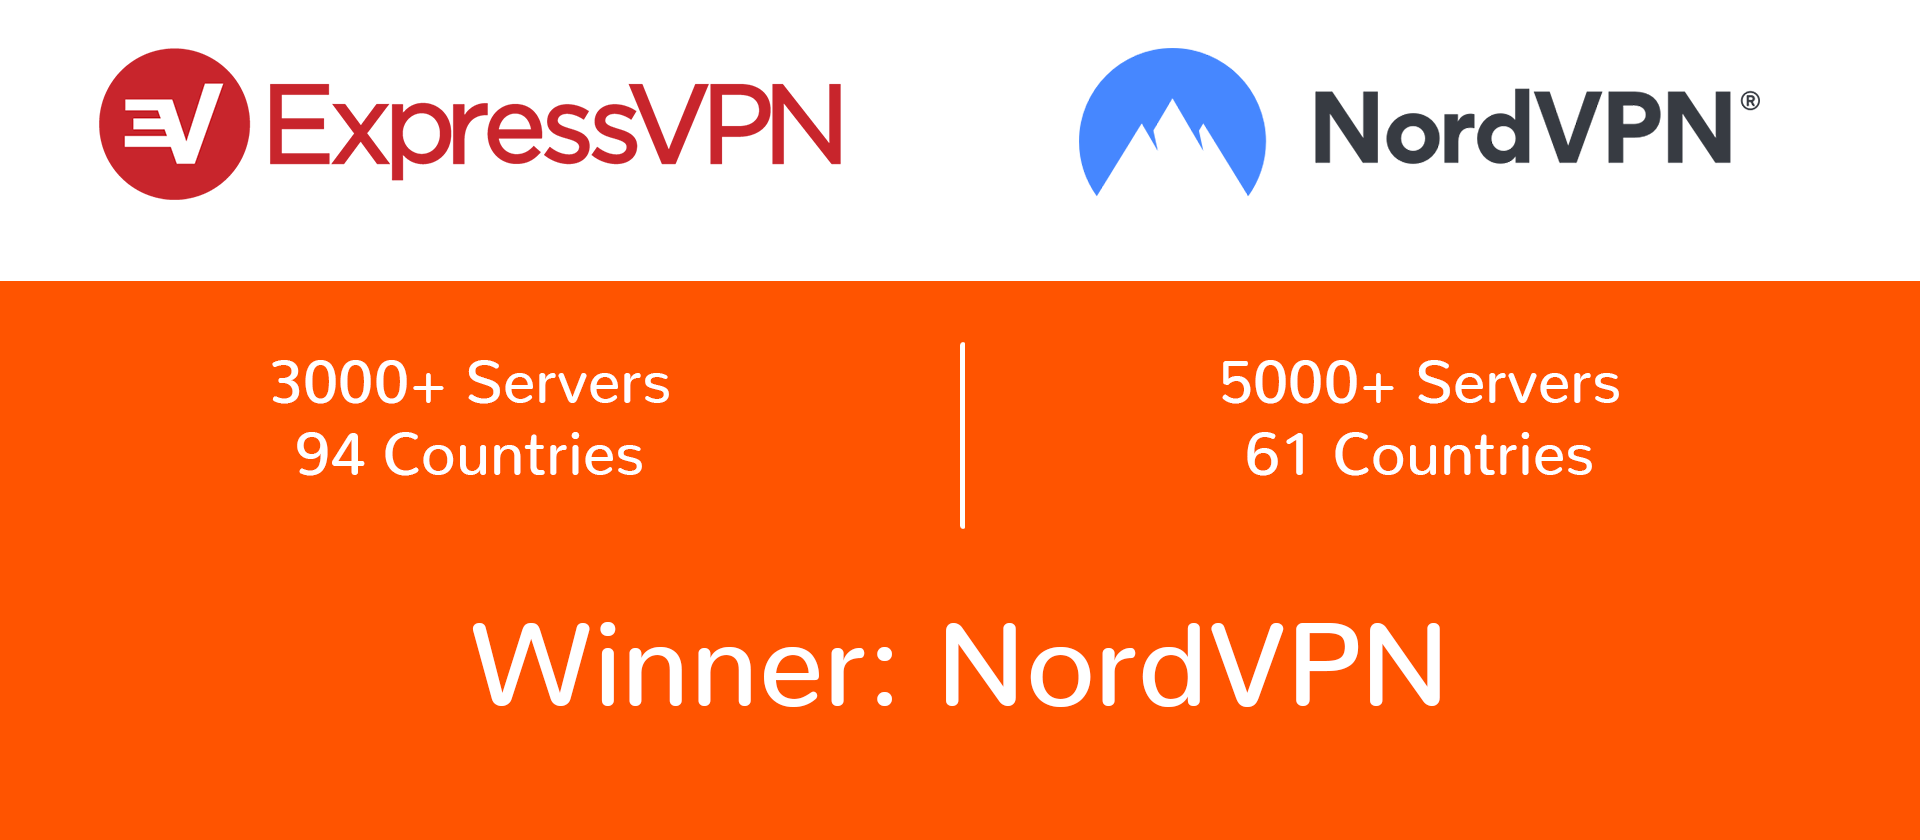 nordvpn vs expressvpn servers locations